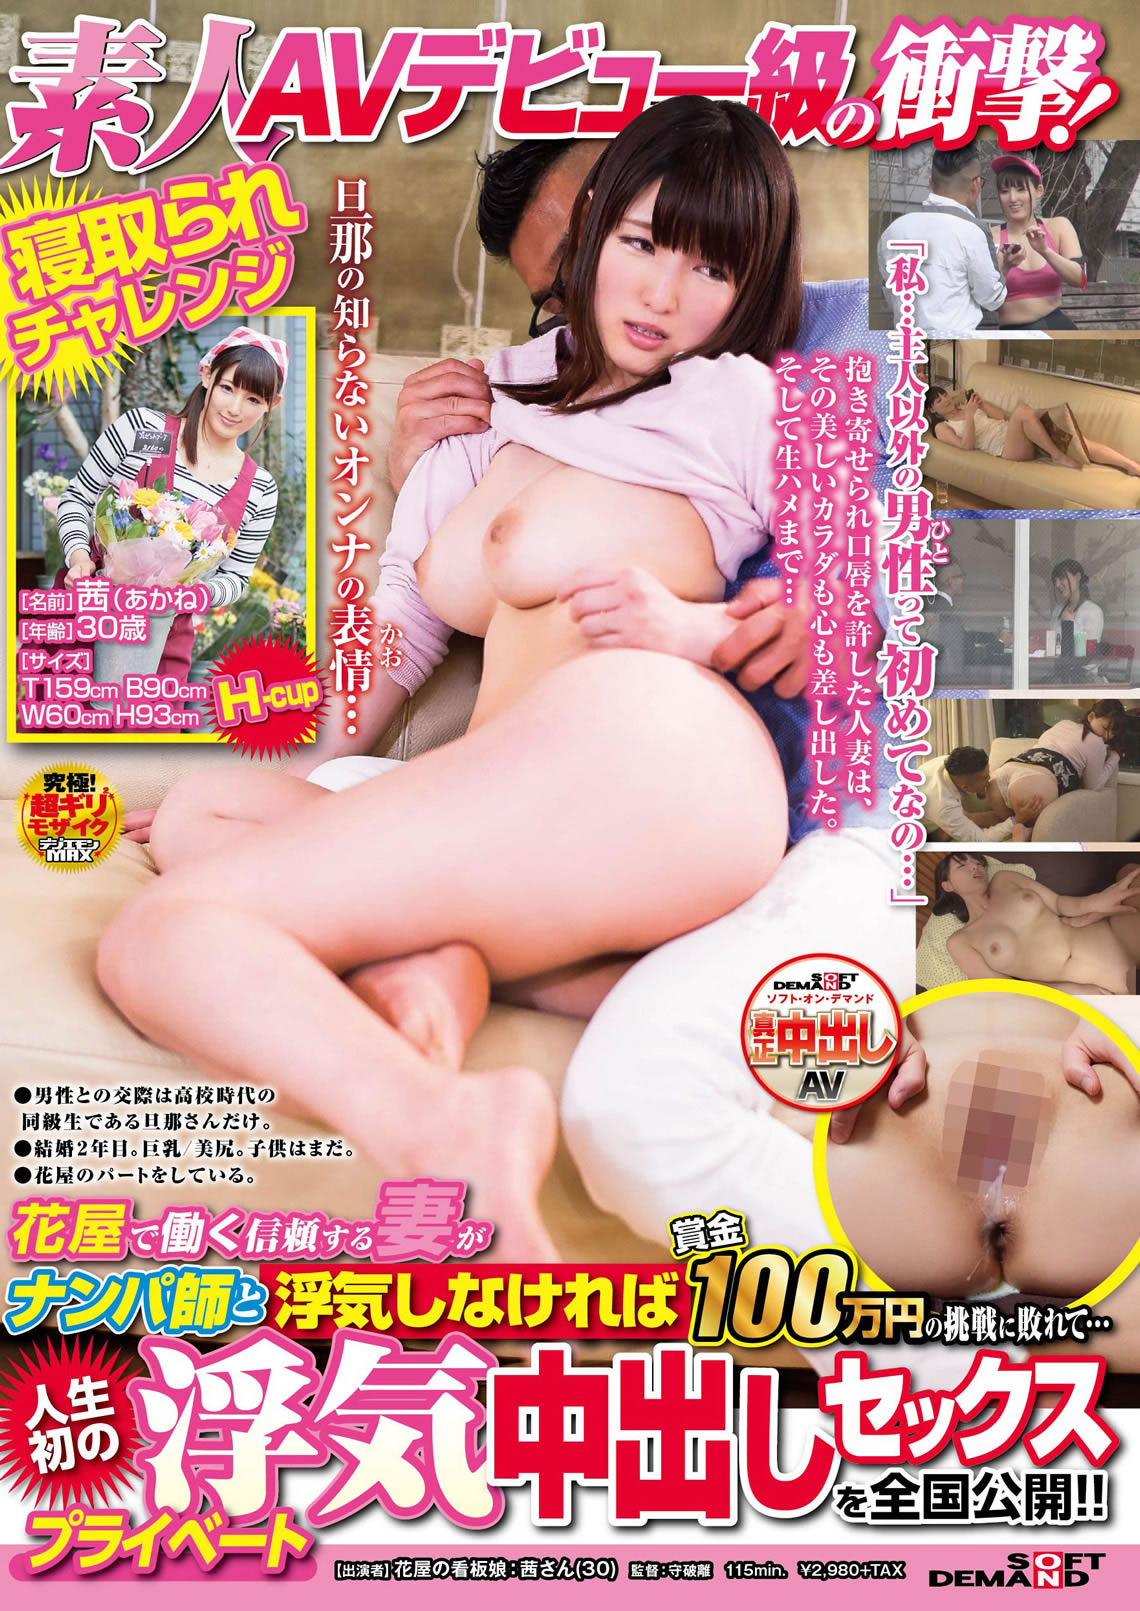 Shocking Amateur's AV Debut! Cuckold Challenge, Lost My Bet That My Wife Working At A Flower Shop Wouldn't Have Sex With A Pick-Up Artist, Win 10 Million Yen... Released Nationwide That The Private Cheating Cream Pie Sex For The First Time In Her Life!!